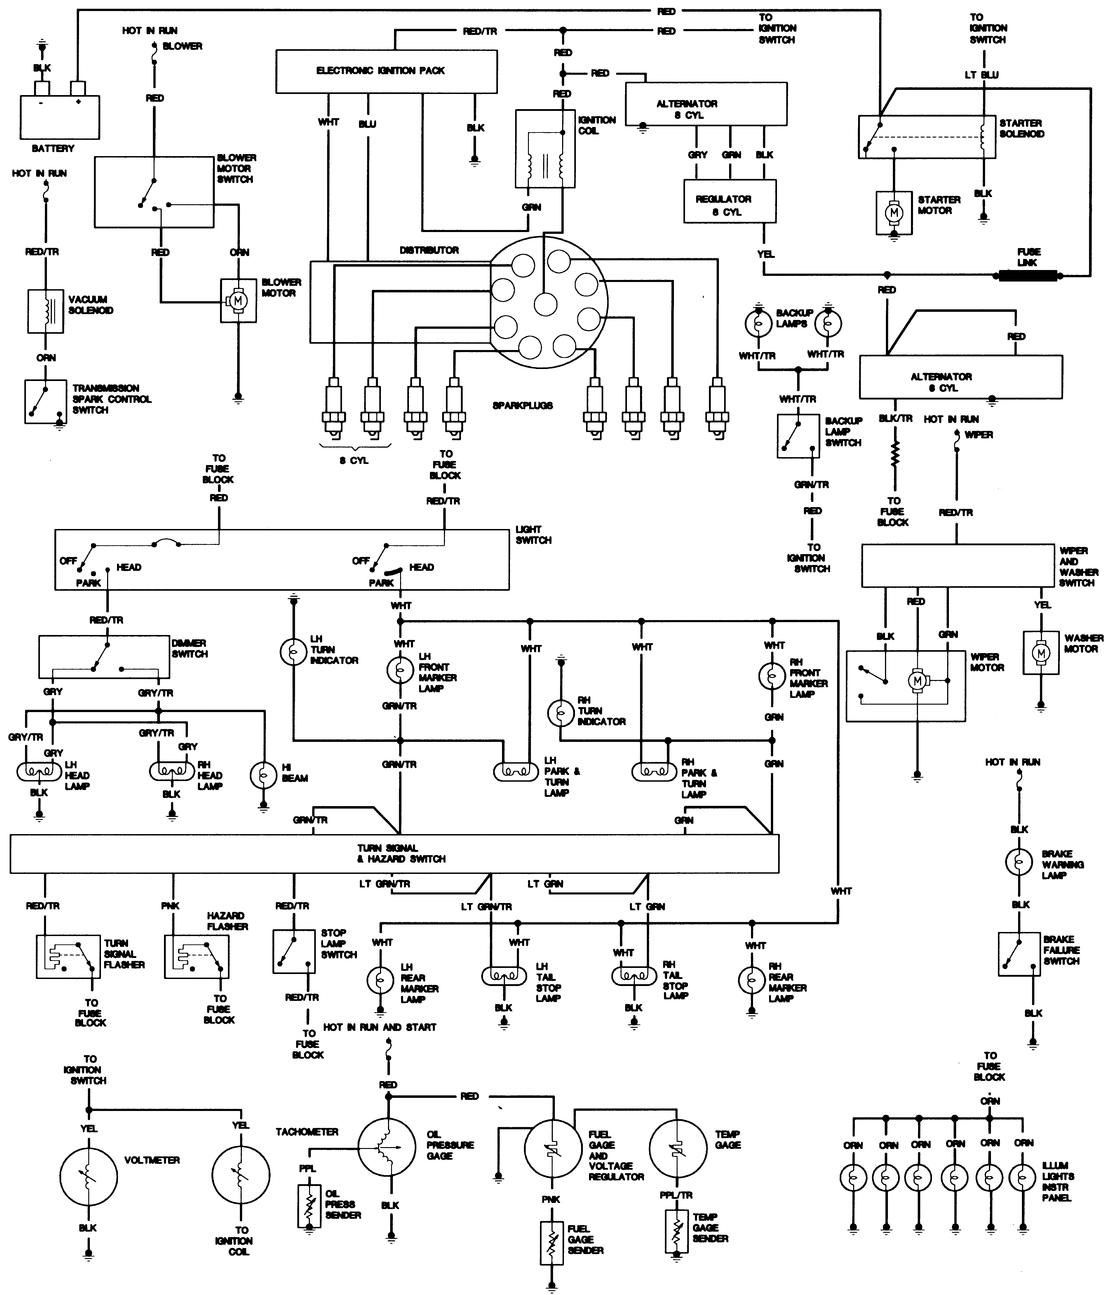 jeep cj5 ignition wiring wiring diagram centre 80 jeep cj5 ignition wiring [ 1111 x 1295 Pixel ]